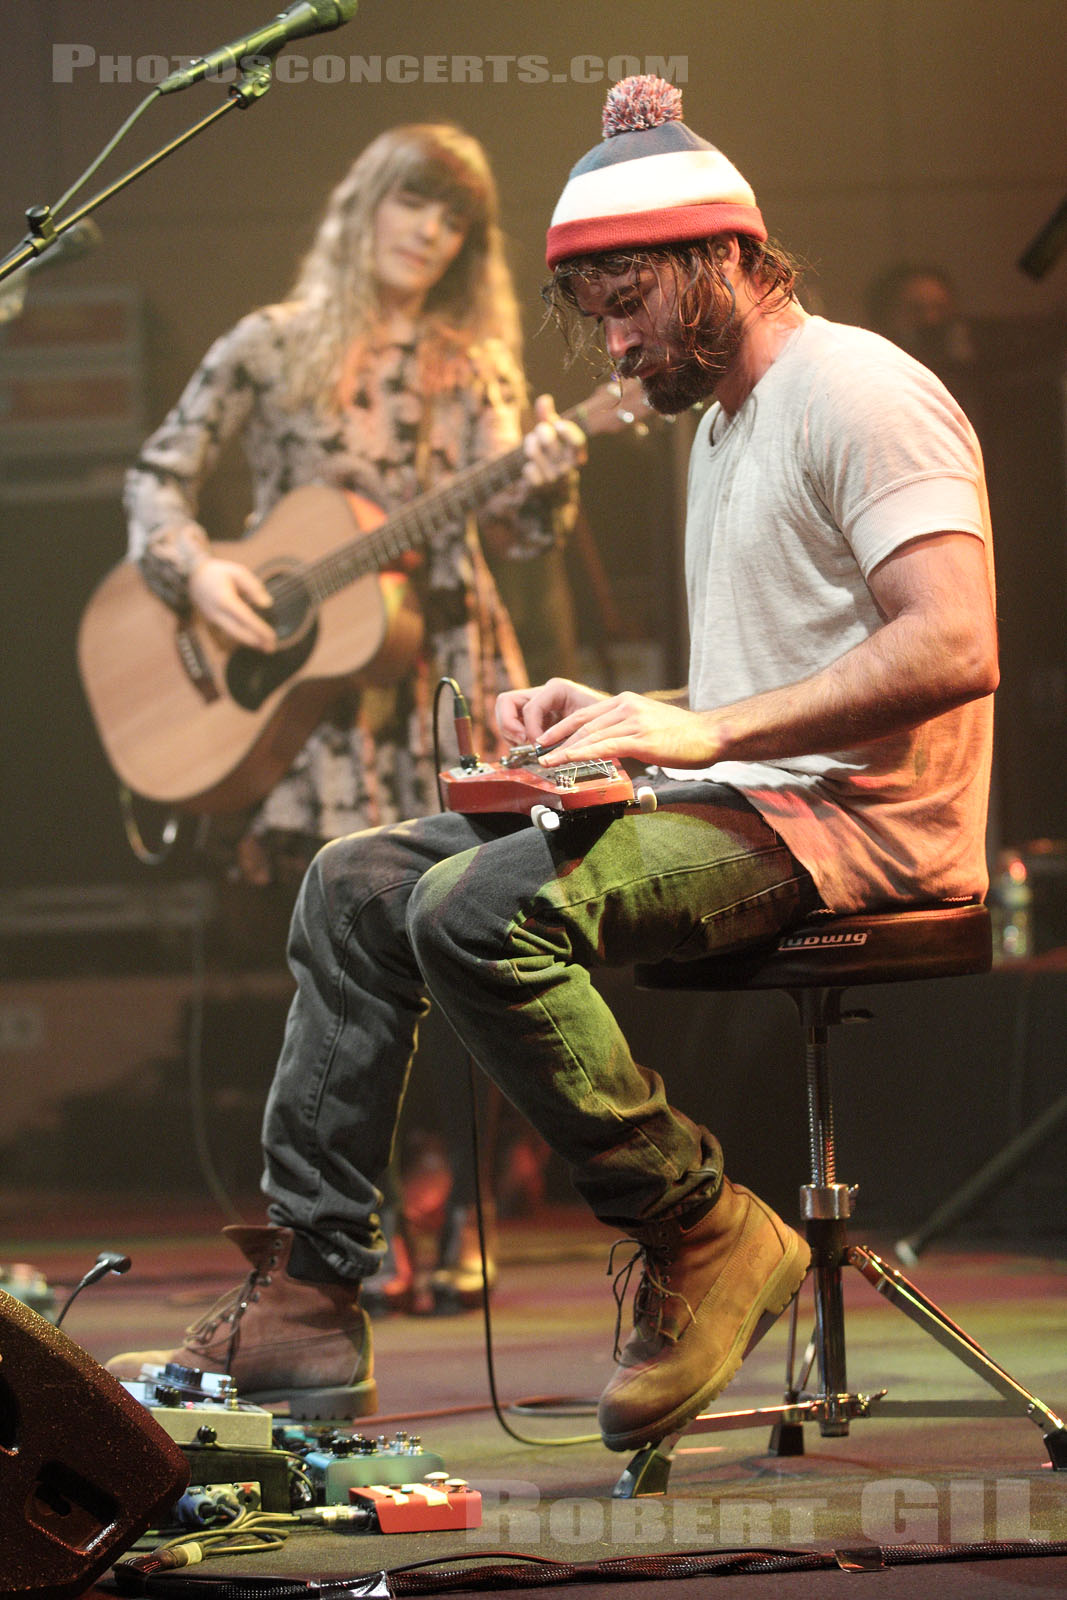 ANGUS AND JULIA STONE - 2014-12-08 - PARIS - Radio France (Studio 105)